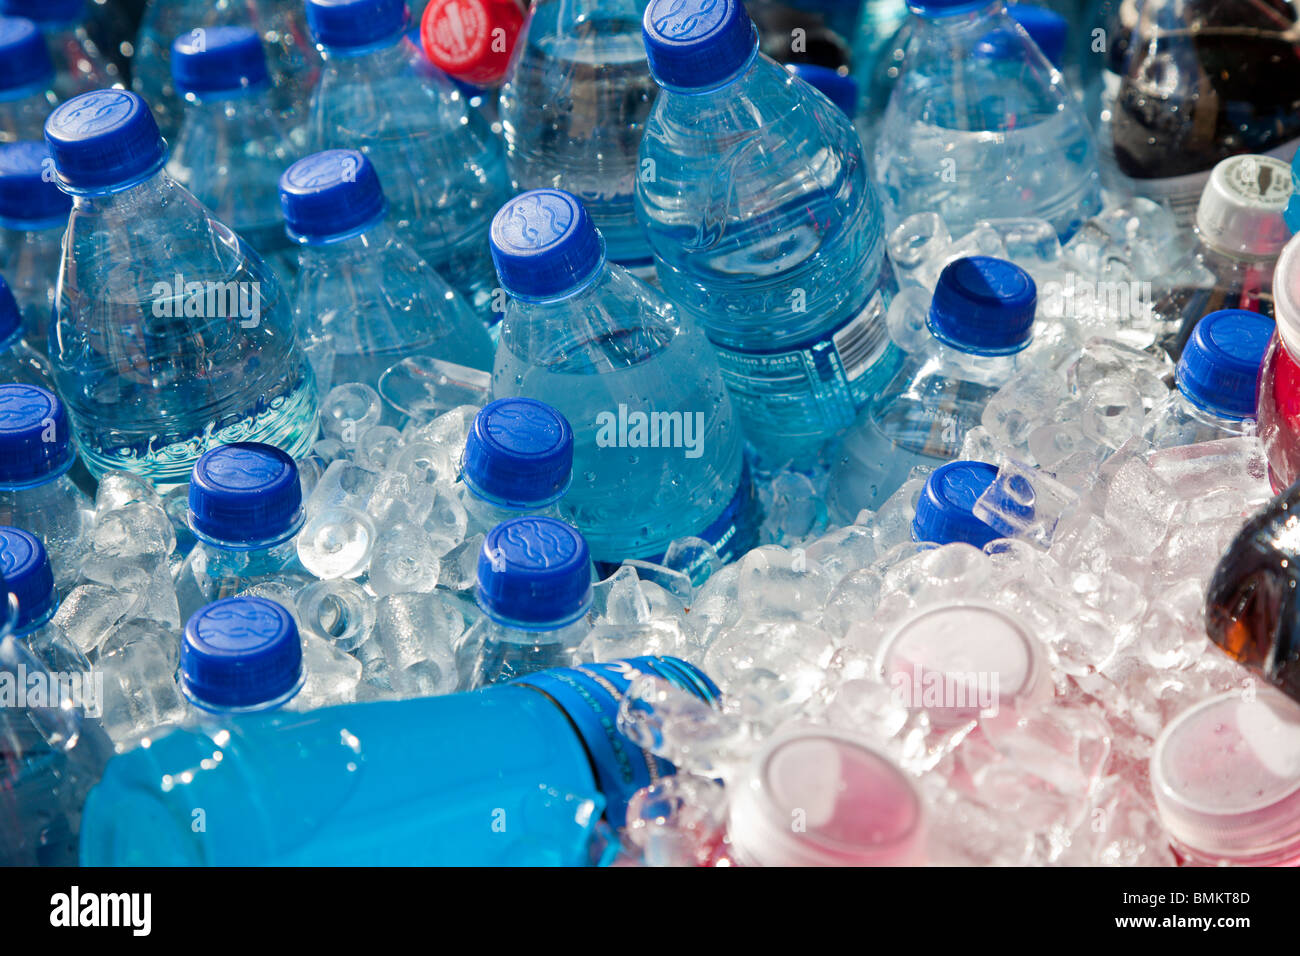 Orlando, FL - Feb 2009 - Plastic water bottles in ice - Stock Image